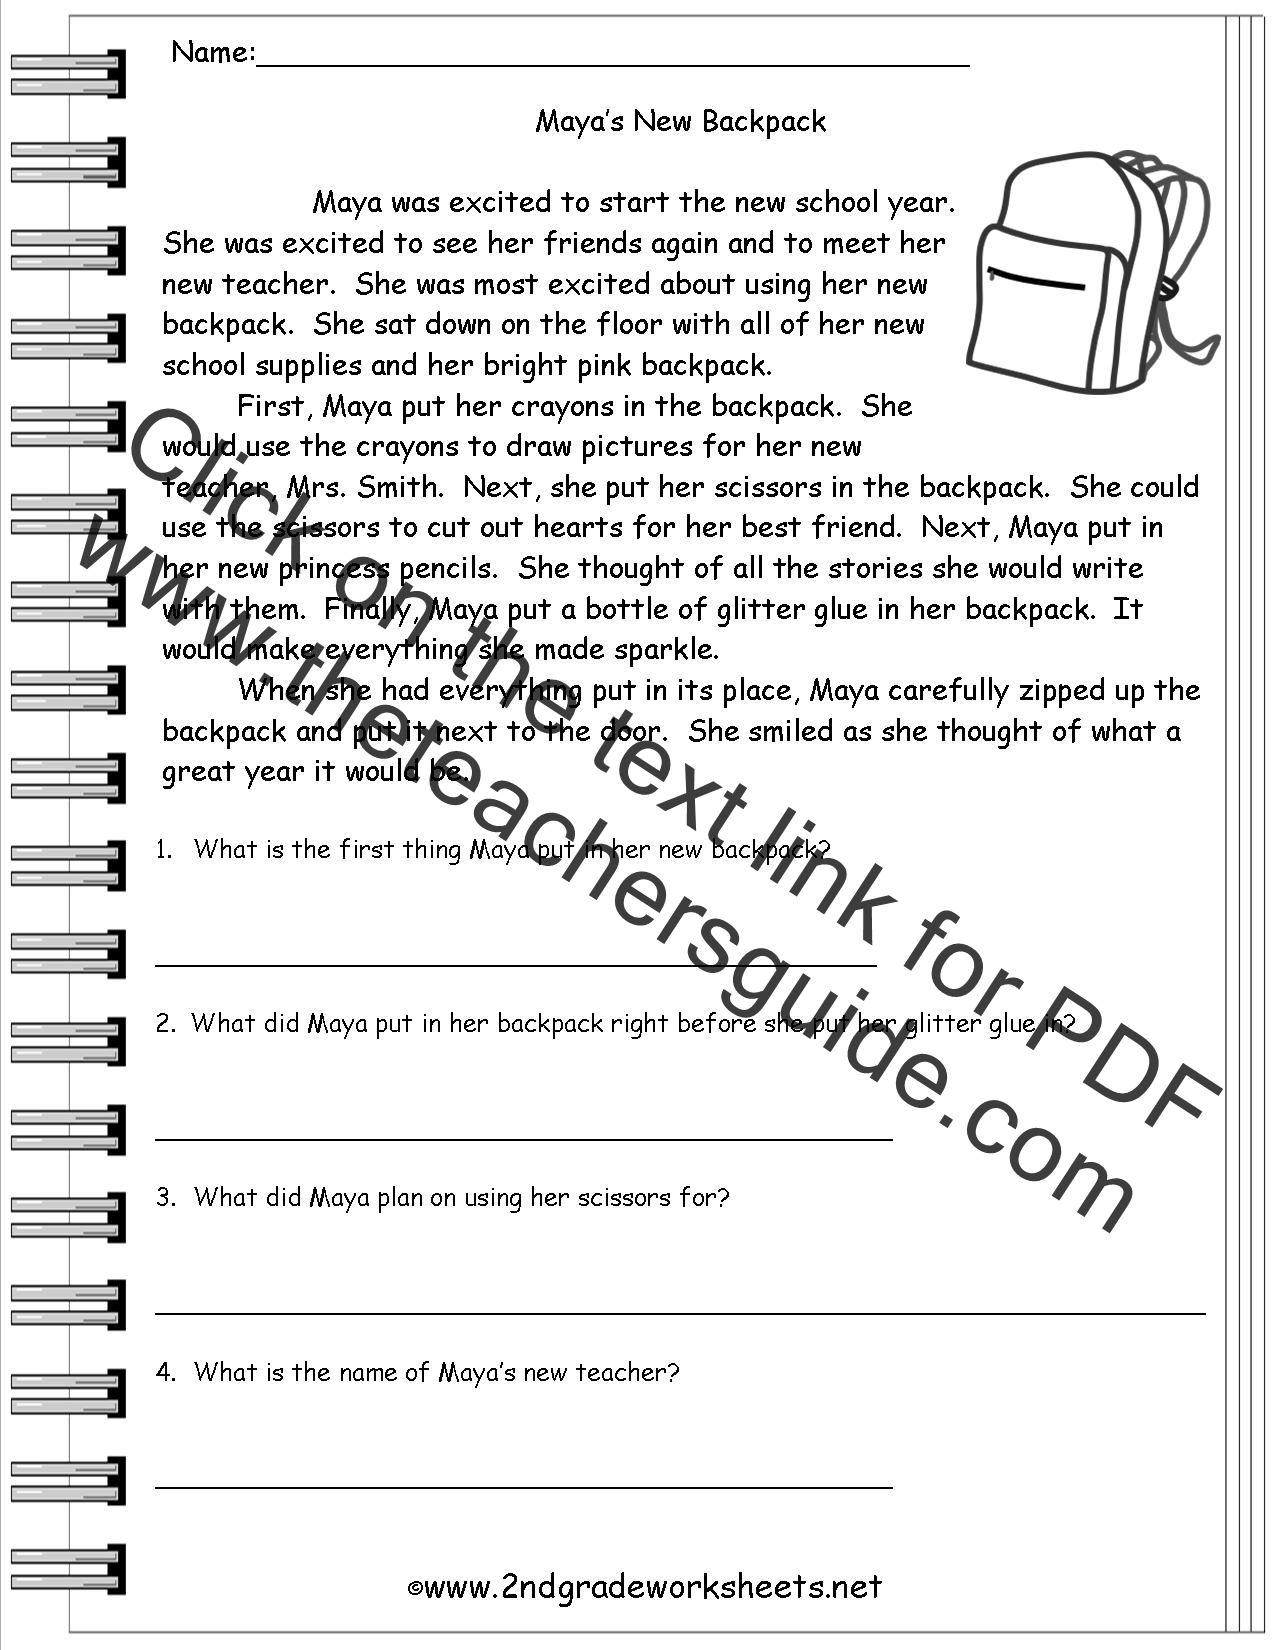 Worksheet Comprehension Passage For Grade 3 worksheet grade 3 reading comprehension worksheets printable common core worksheeet